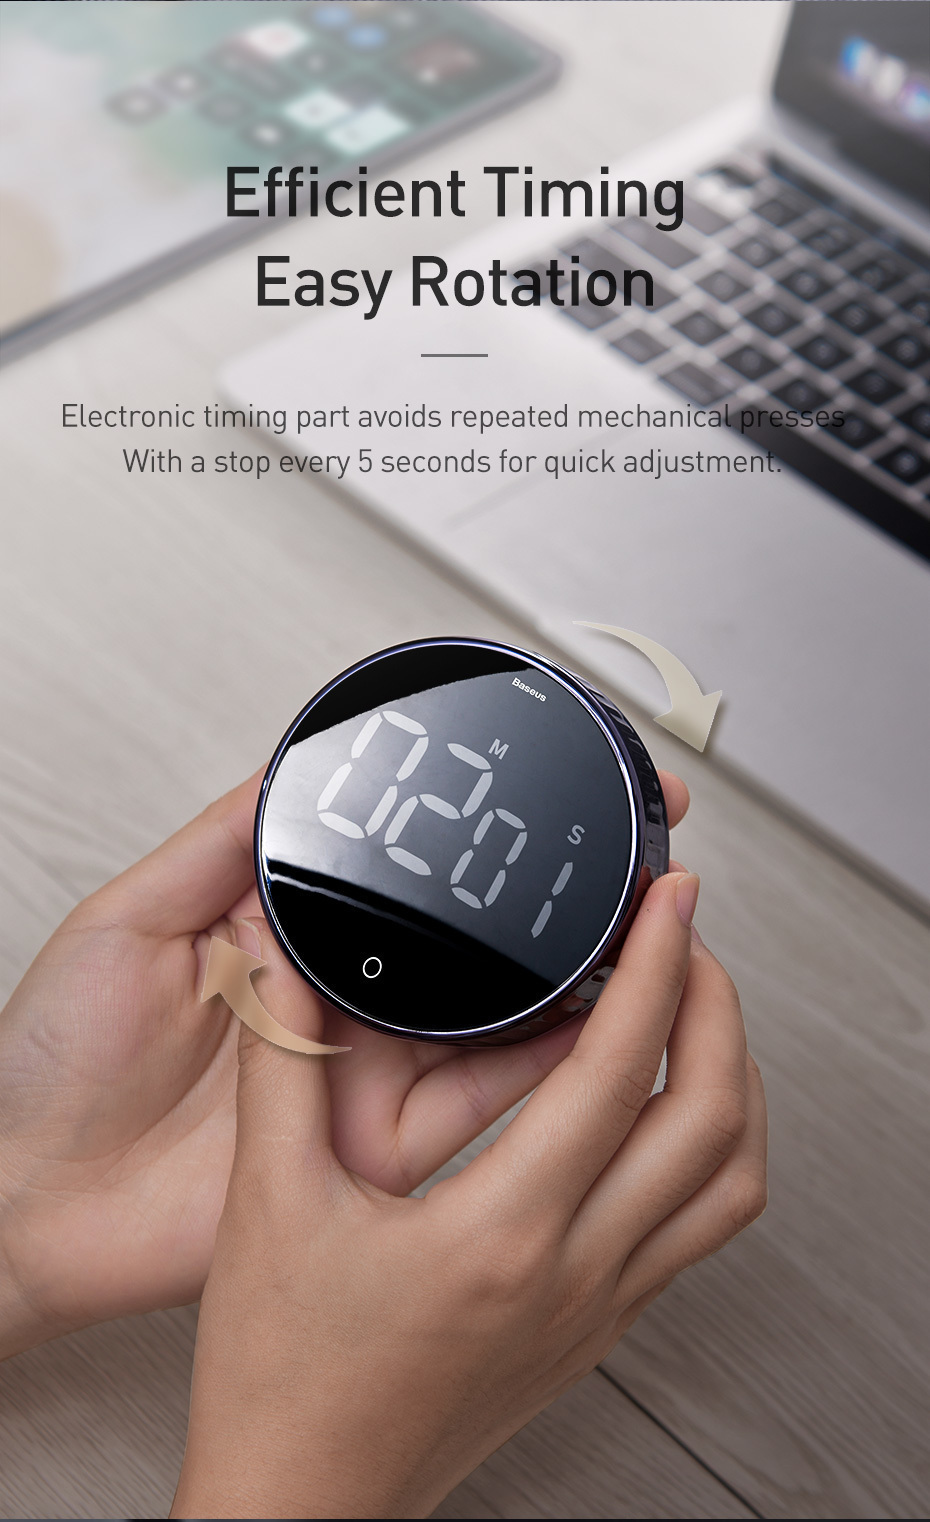 LED Digital Timer, An Electronic LED Digital Timer